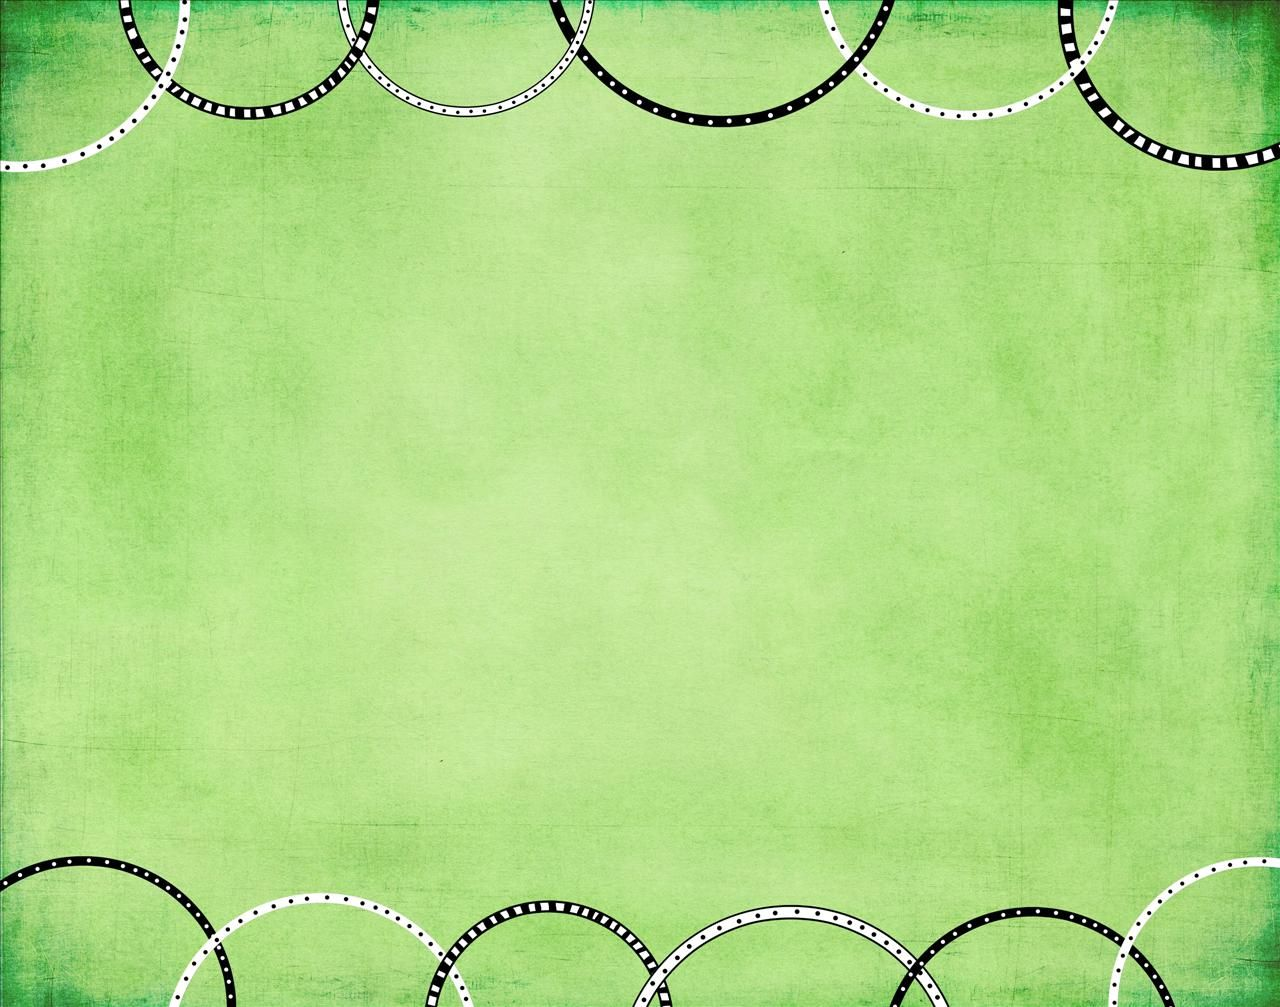 Green With Rings PPT Backgrounds